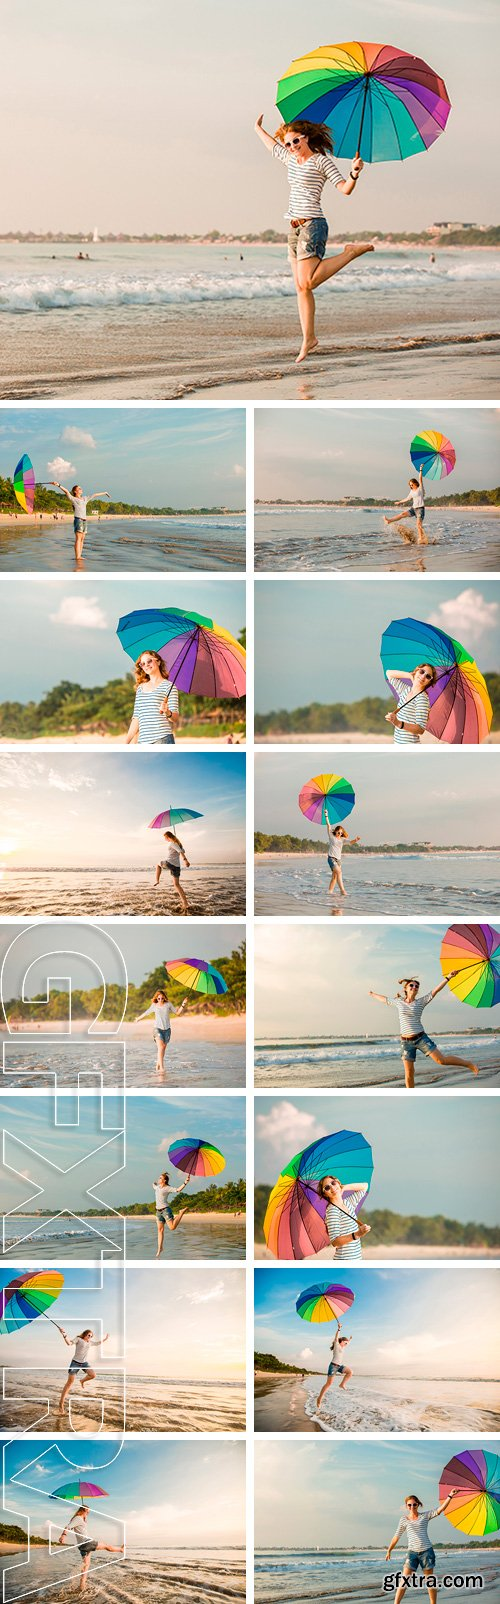 Stock Photos - Cheerful caucasian young woman with rainbow umbrella having fun on the Jimbaran beach on Bali before sunset with beautiful ocean and blue sky on background